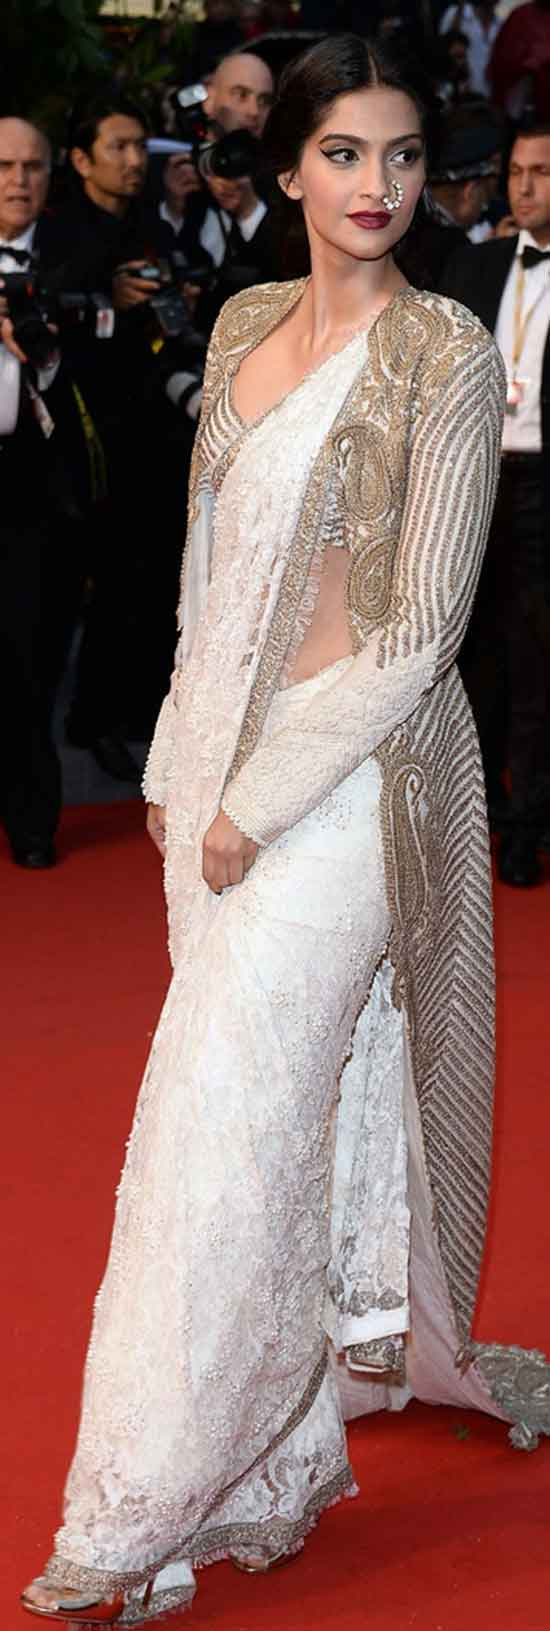 Sonam-Kapoor-at-Cannes-In-Anamika-Khanna-Saree